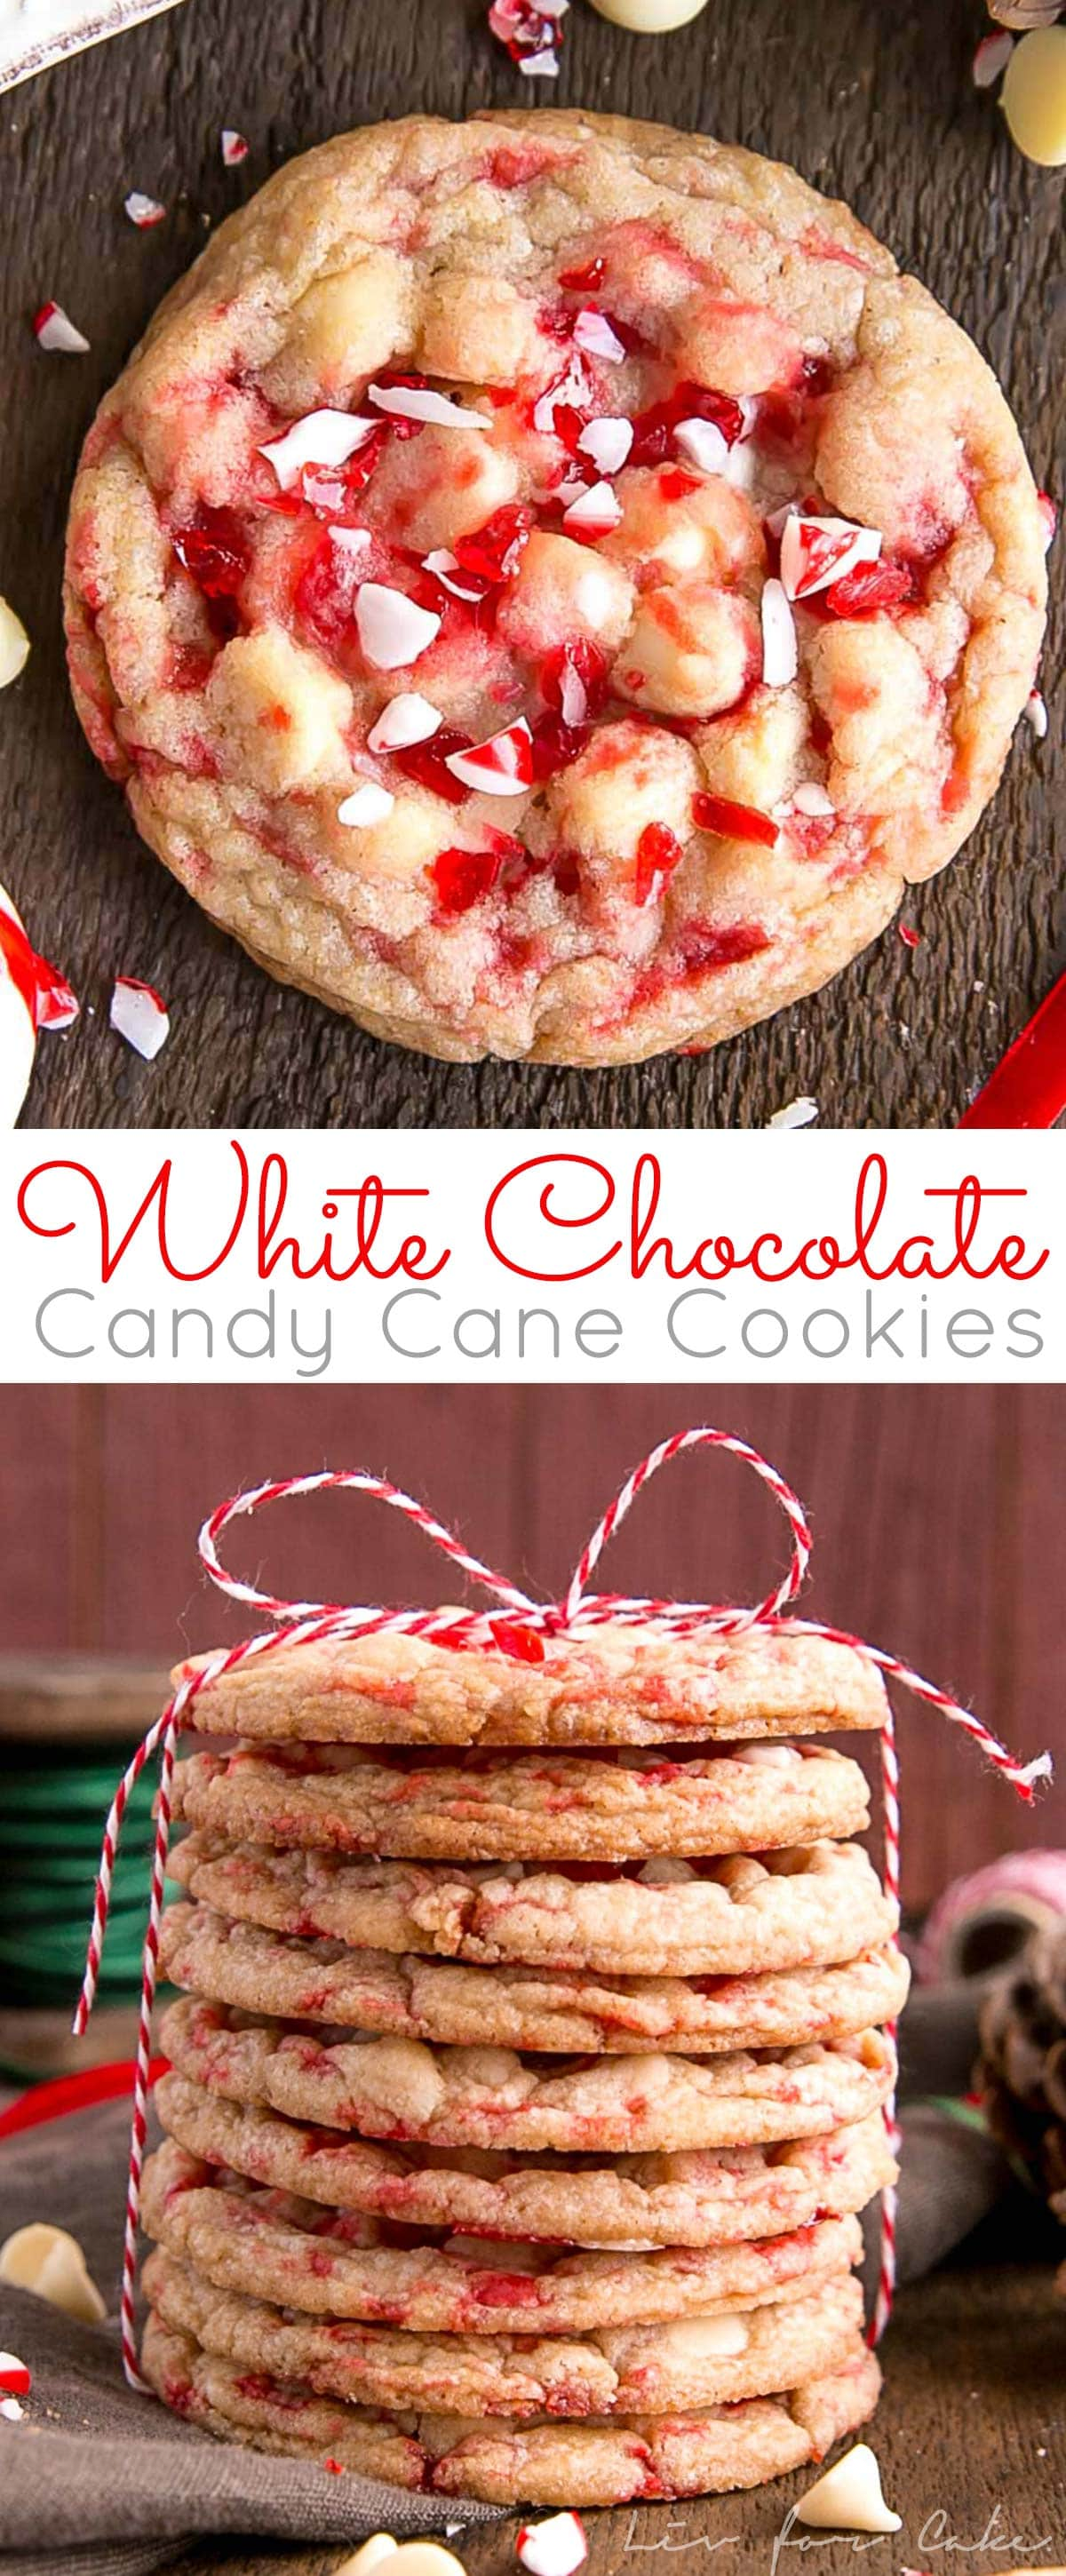 These White Chocolate Candy Cane Cookies are crispy, chewy and delicious. The perfect sweet treat for the holidays! | livforcake.com